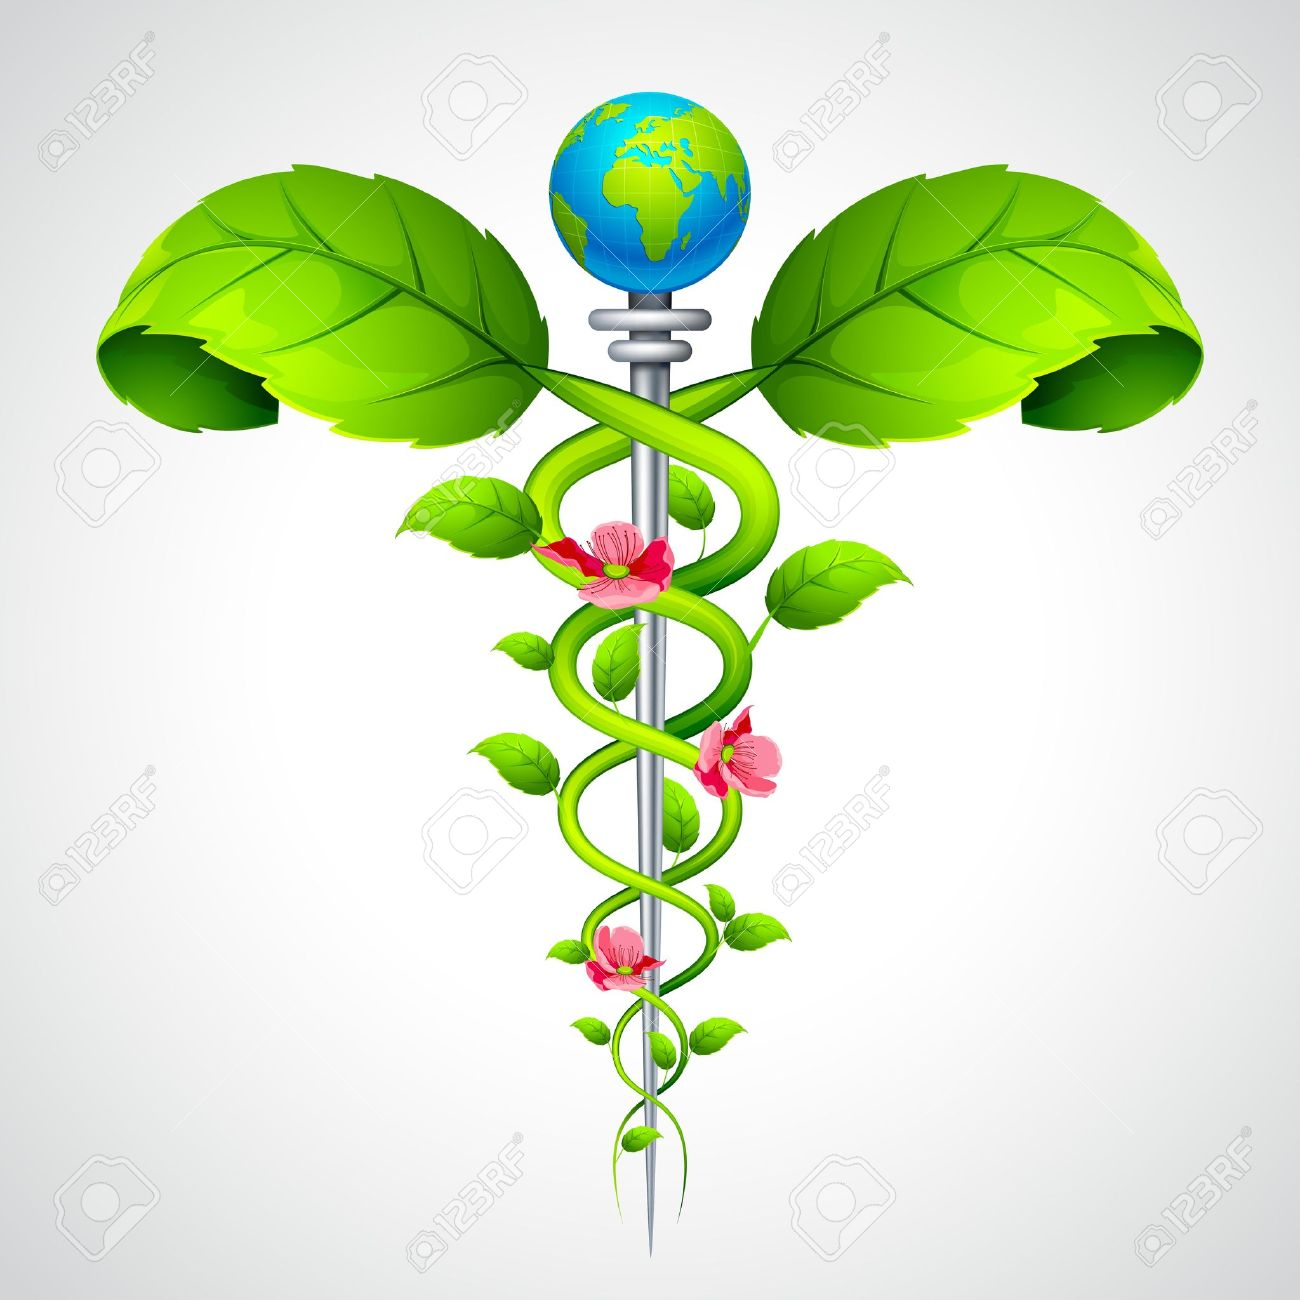 Caduceus sign with Leaf and Flowers - 14814144